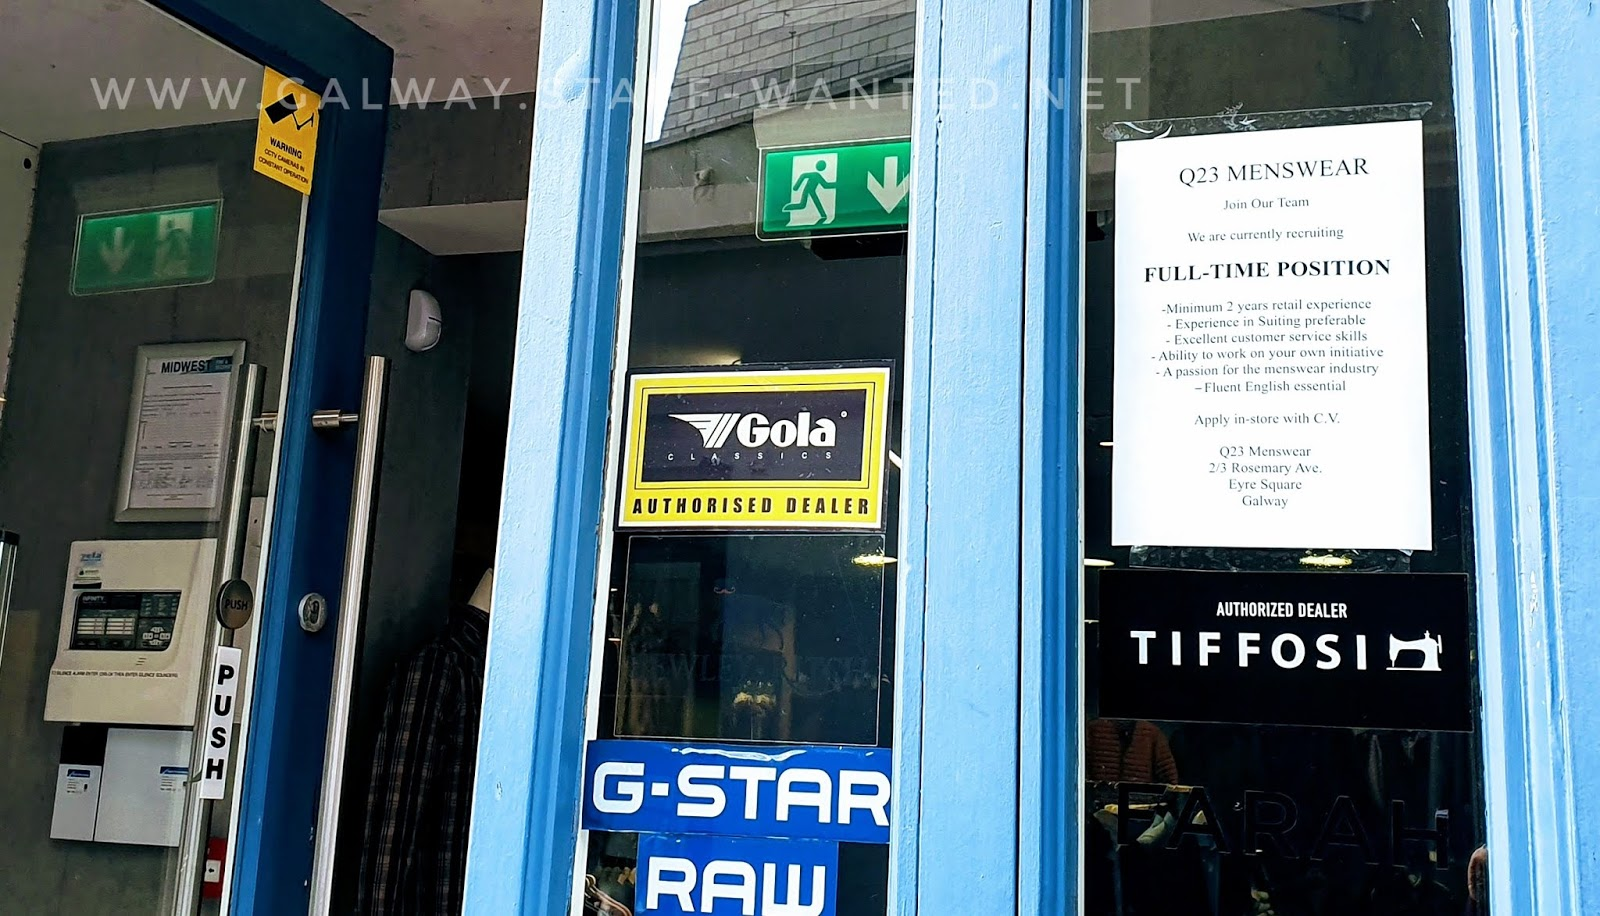 section of shopfront with the job advertisement, and sticks for G-Star RAW, Tiffosi, Gola Classics authorised dealer